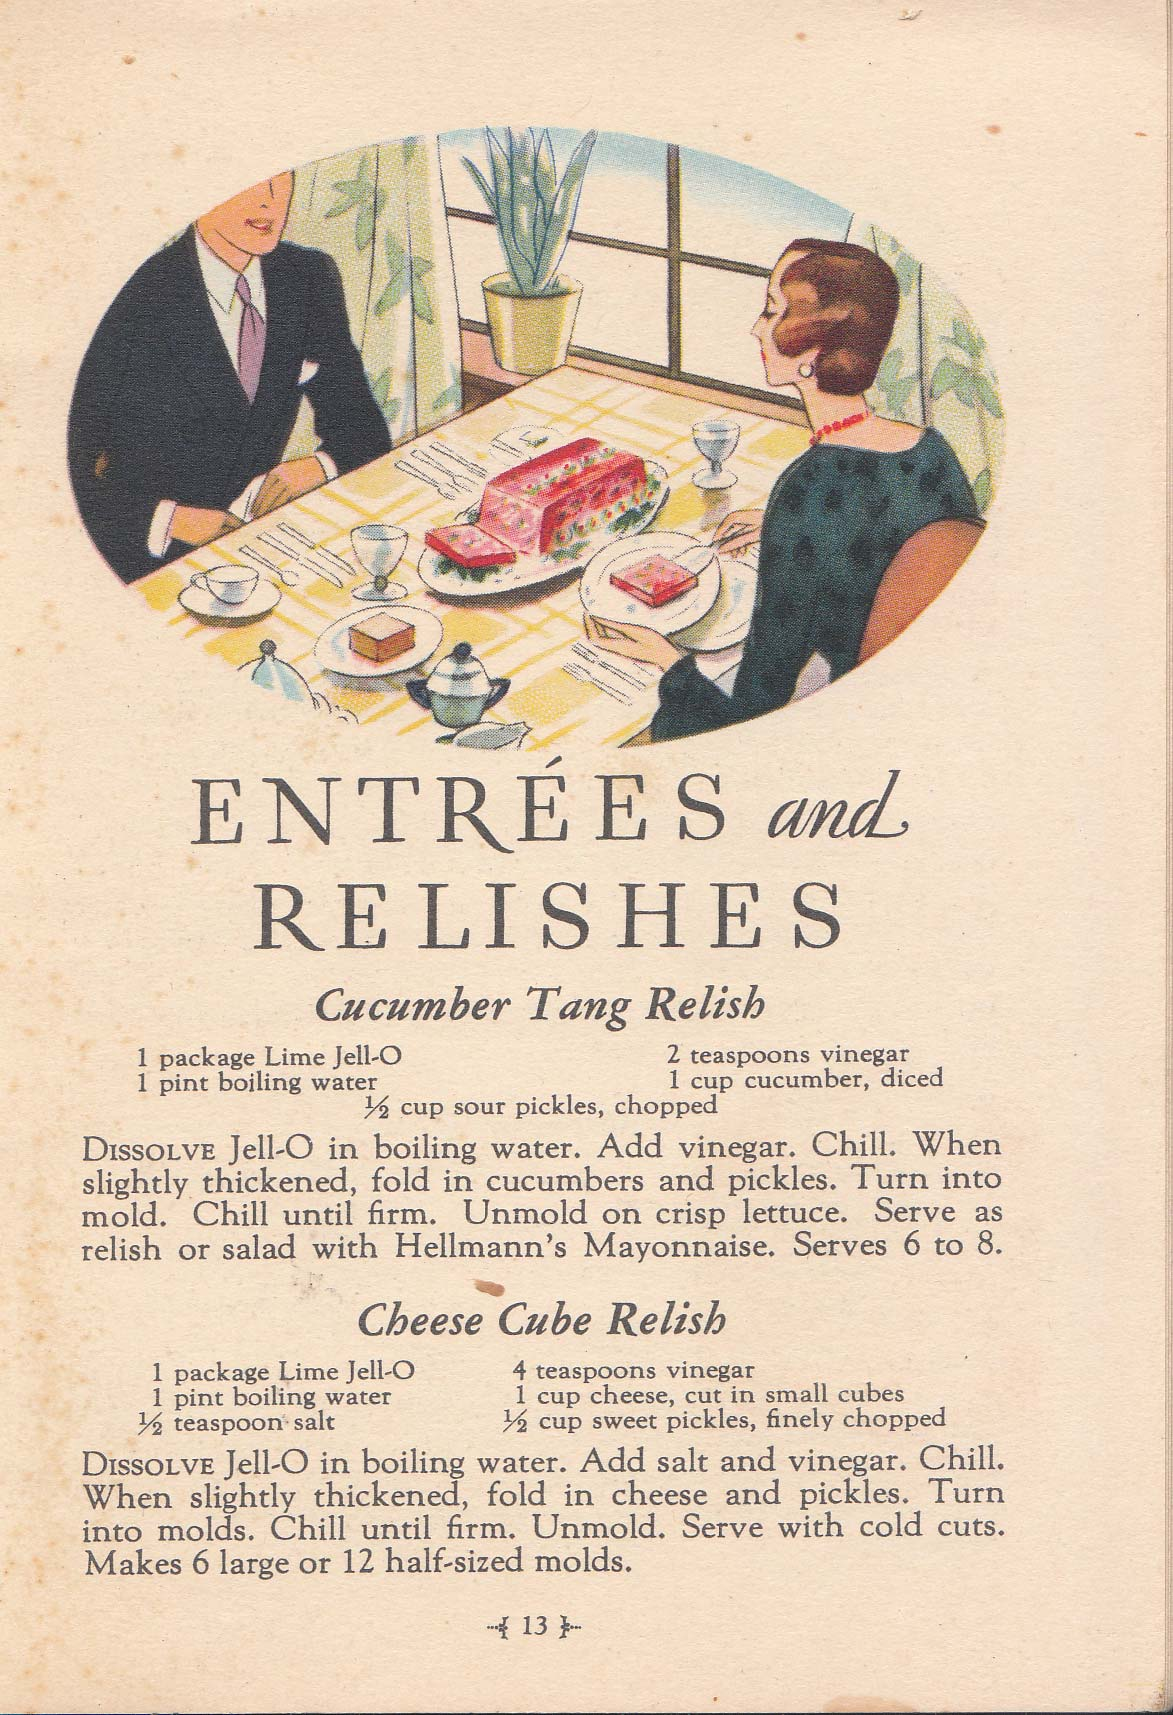 Corned Beef Loaf This Recipe Comes From A 1931 Pamphlet Enled Thrifty Jell O Recipes To Brighten You Menus This Booklet Is Largely Characterized By